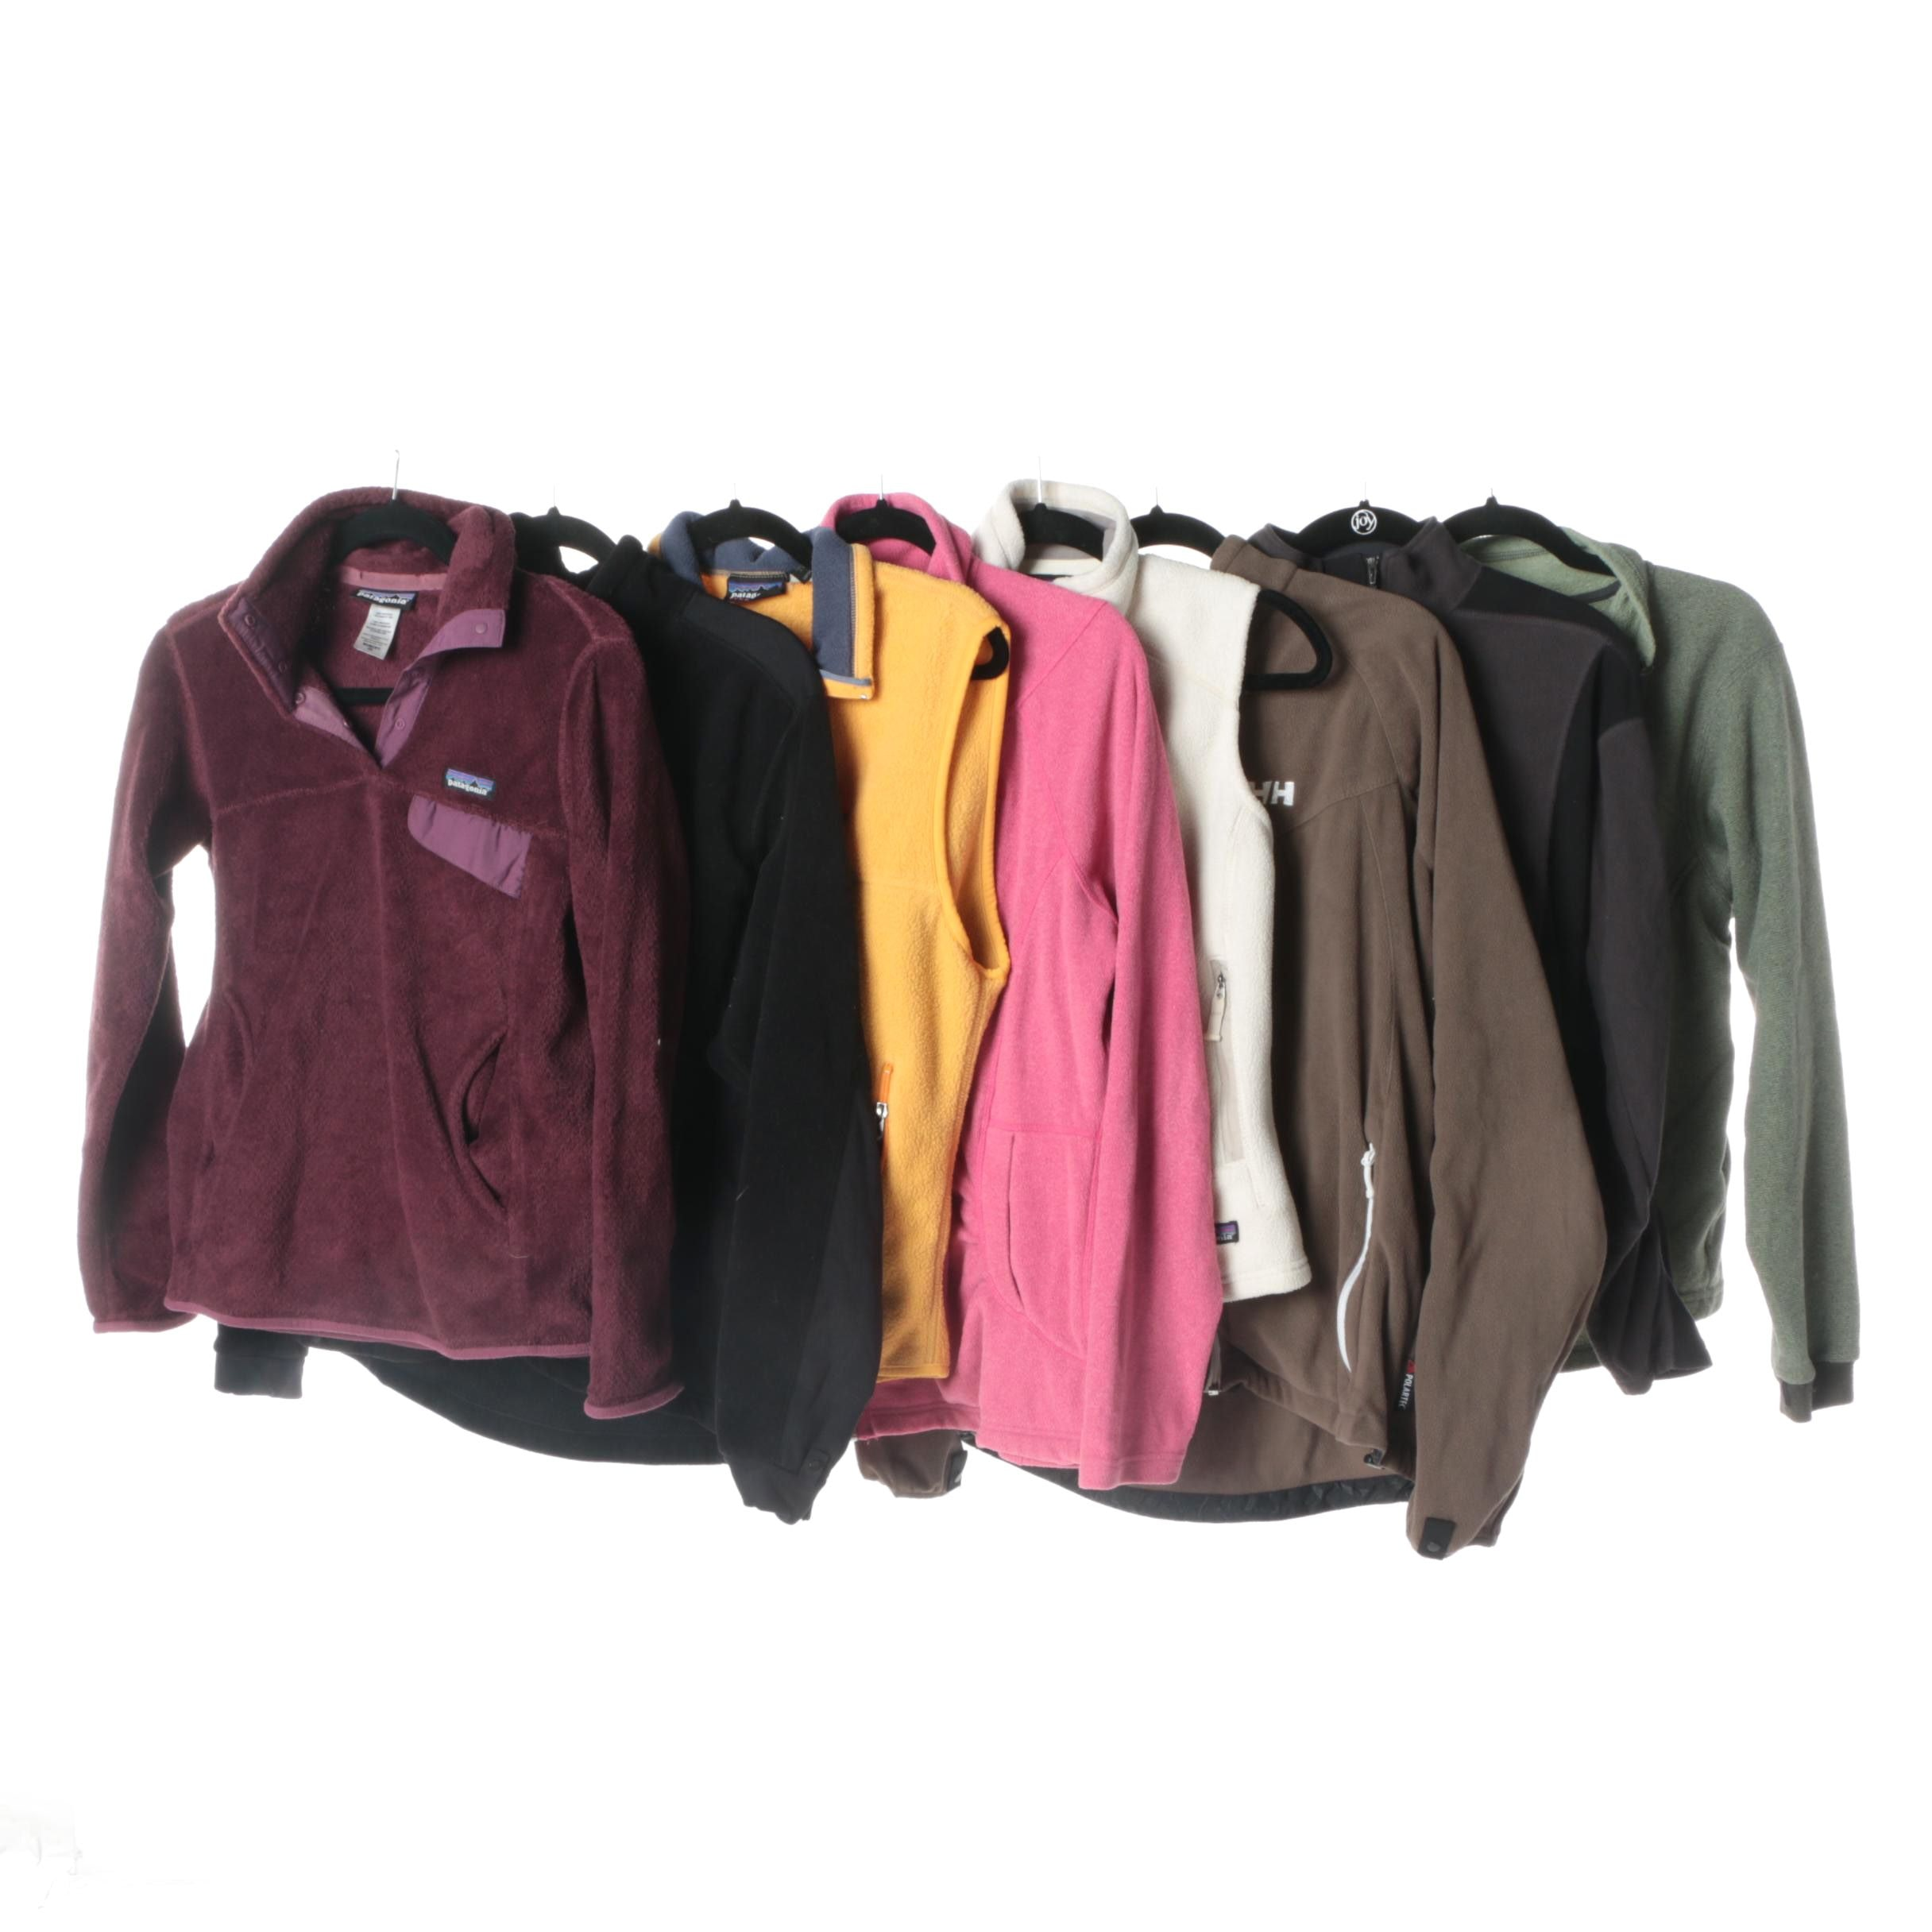 Women's Fleece Jackets and Vests Including Patagonia and The North Face